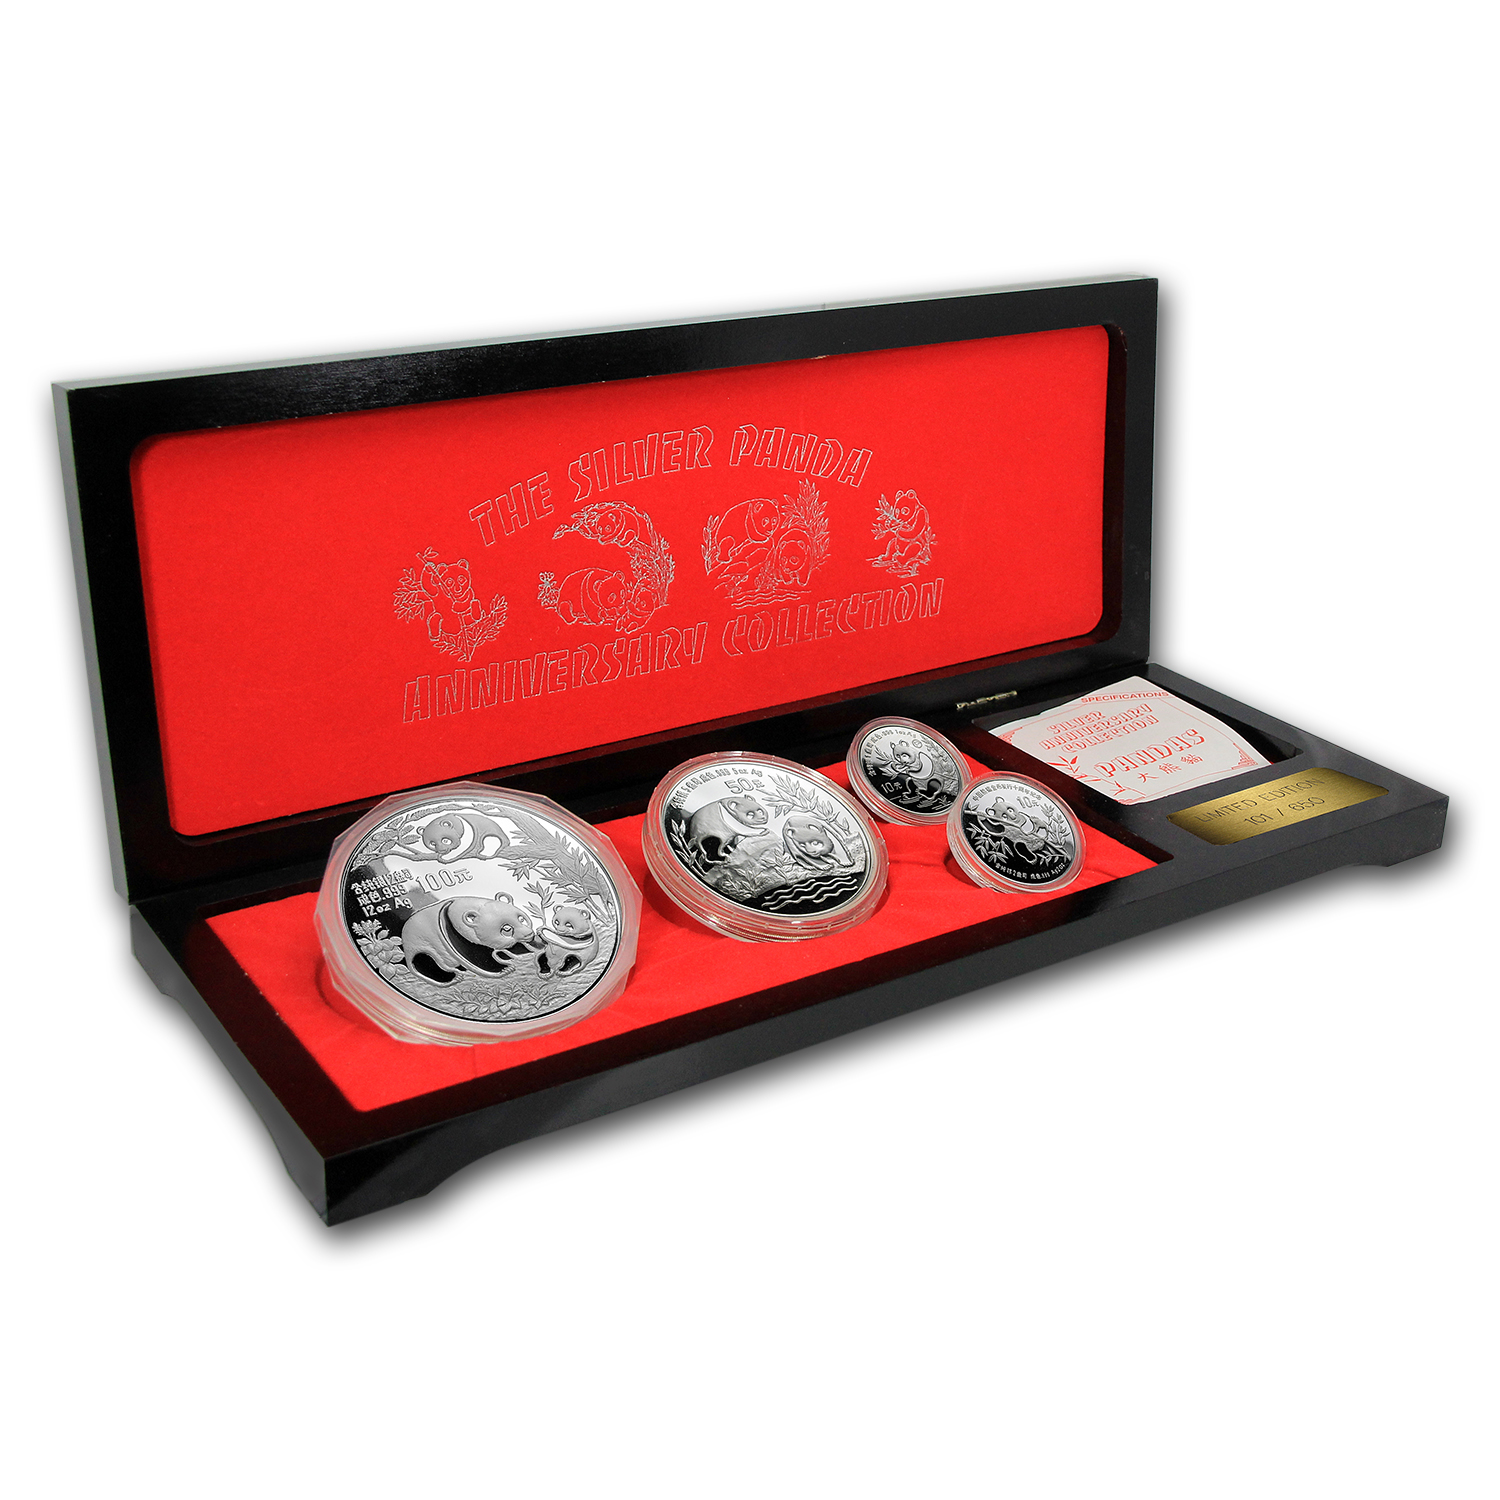 1991 China 10th Anniversary Silver Panda Proof Collection